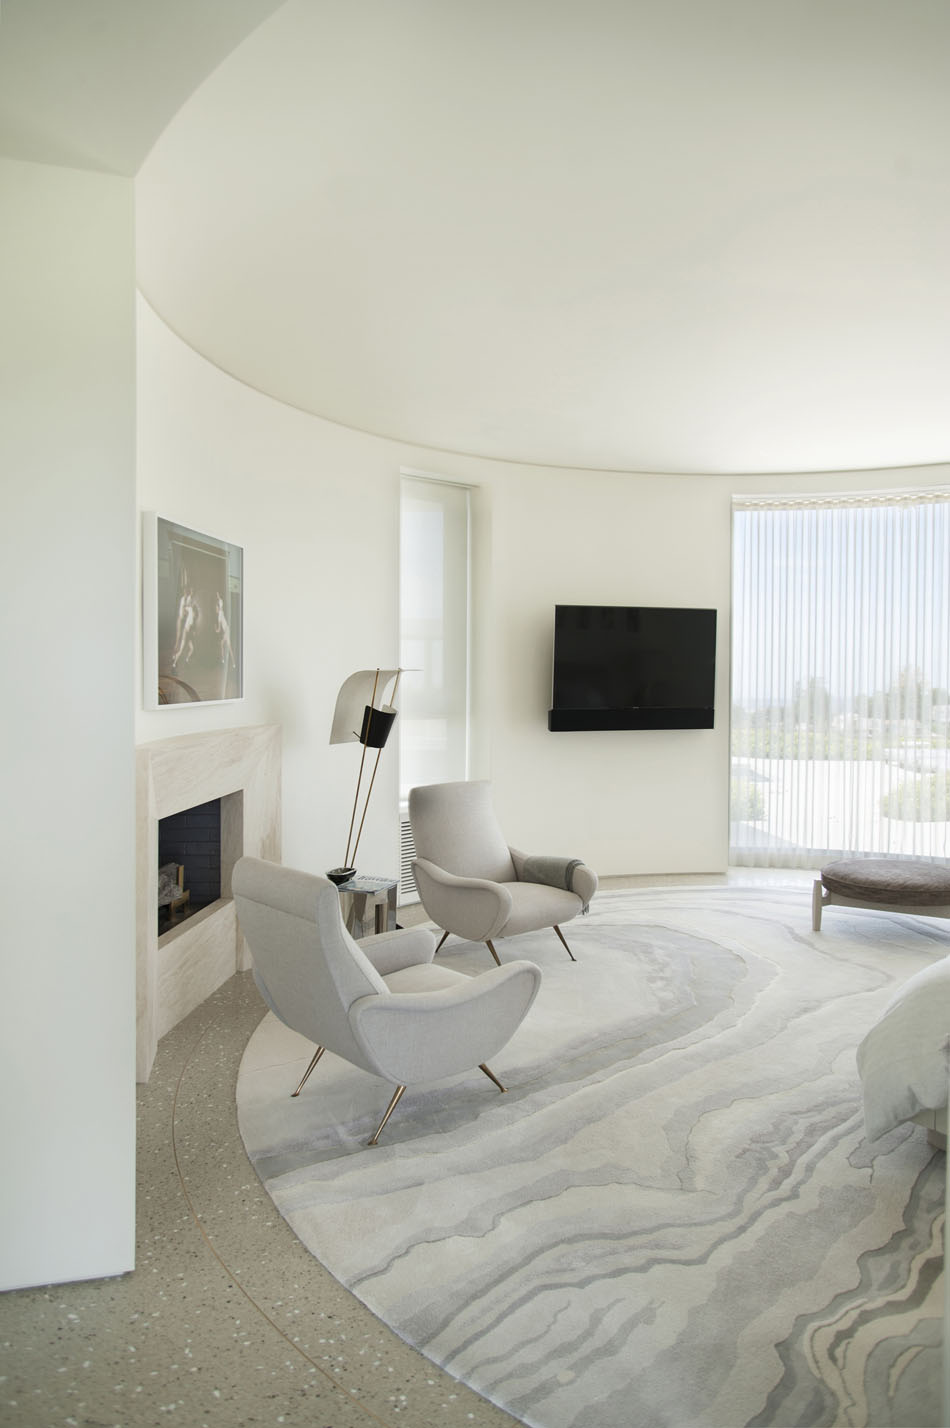 A Large Rug In Trousdale Estates Contemporary Home, Photo Courtesy Of  Dennis Gibbens Architects. This Kind Of Marble Rug Design Is The Perfect  Addition For ...